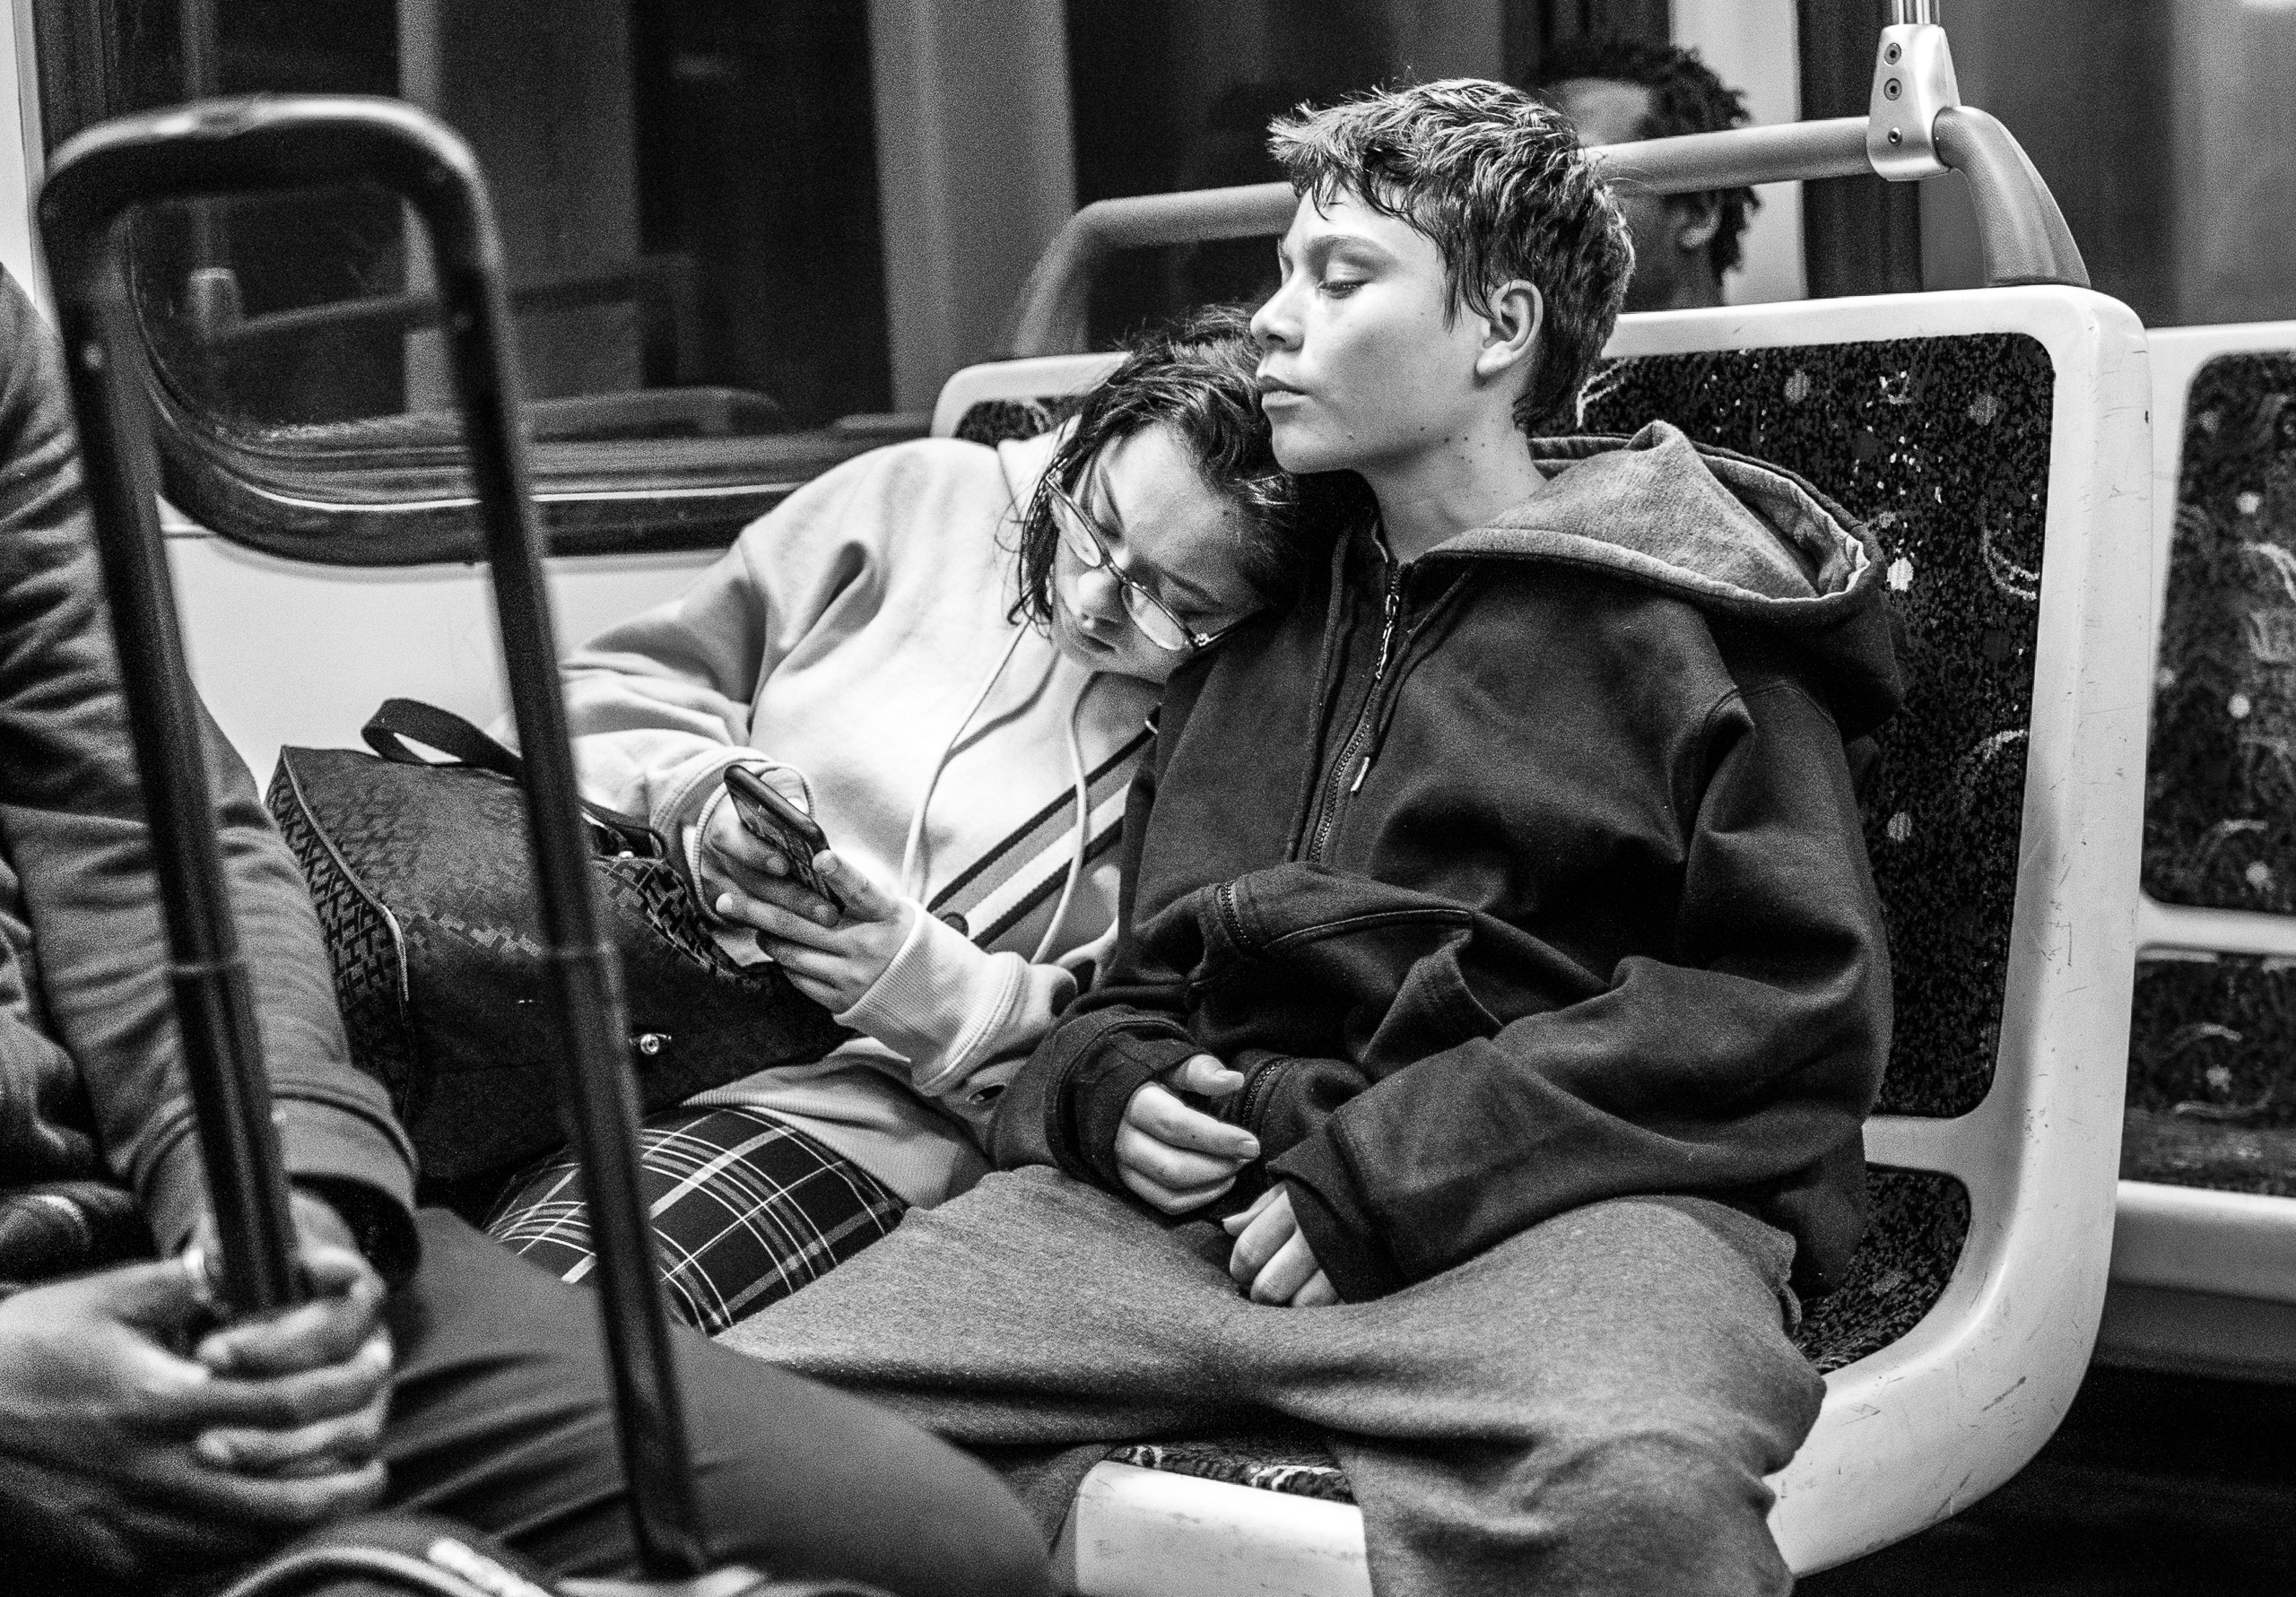 A girl rests her head on a guy's shoulder and looks at her phone. He rests his head on her head. They both look so very tired.